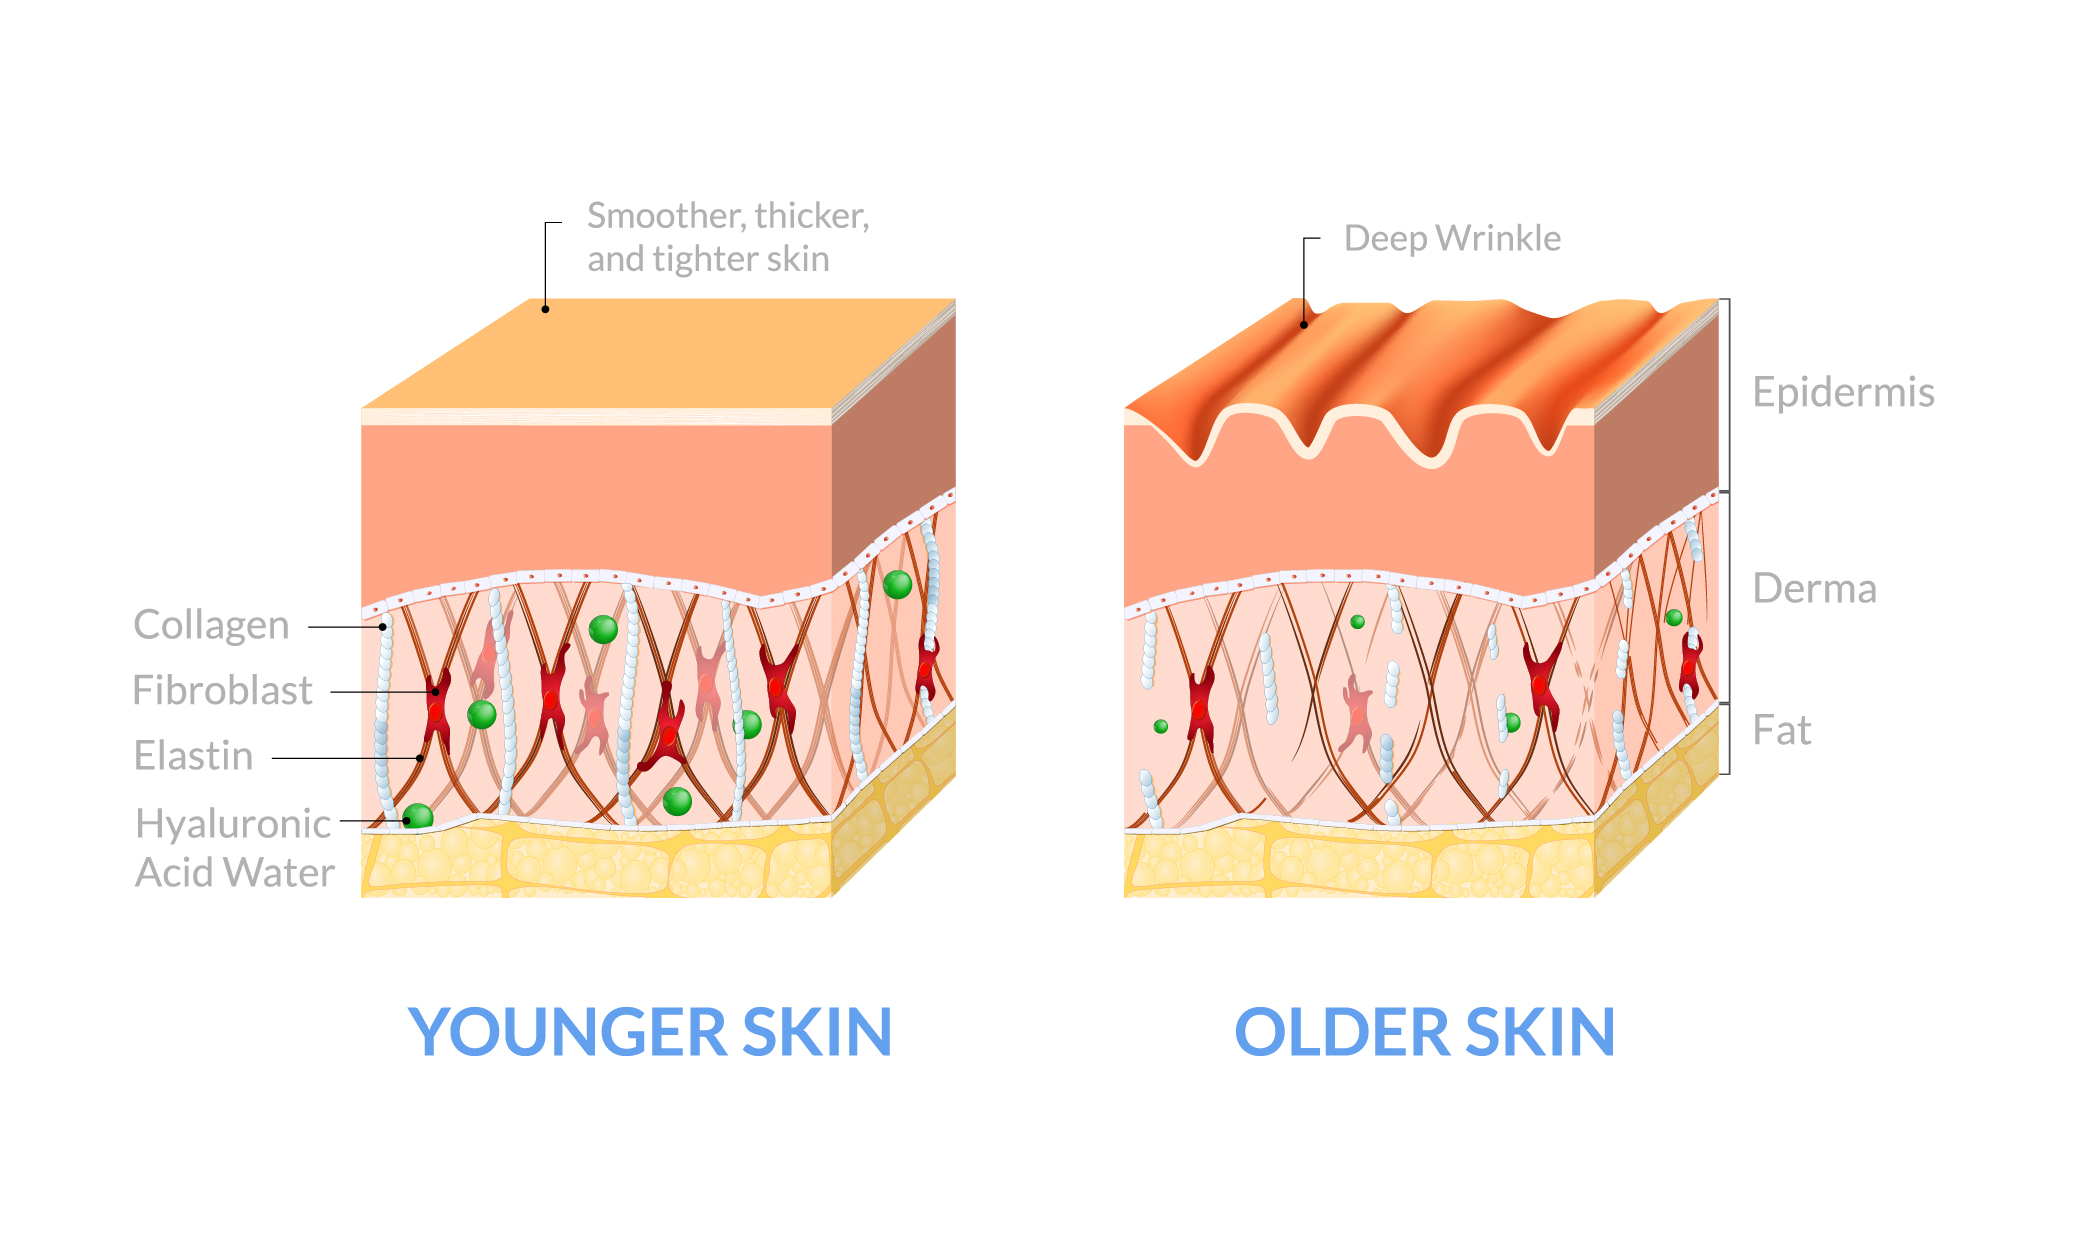 diagram comparing older and younger skin - younger skin has more collagen and is smoother